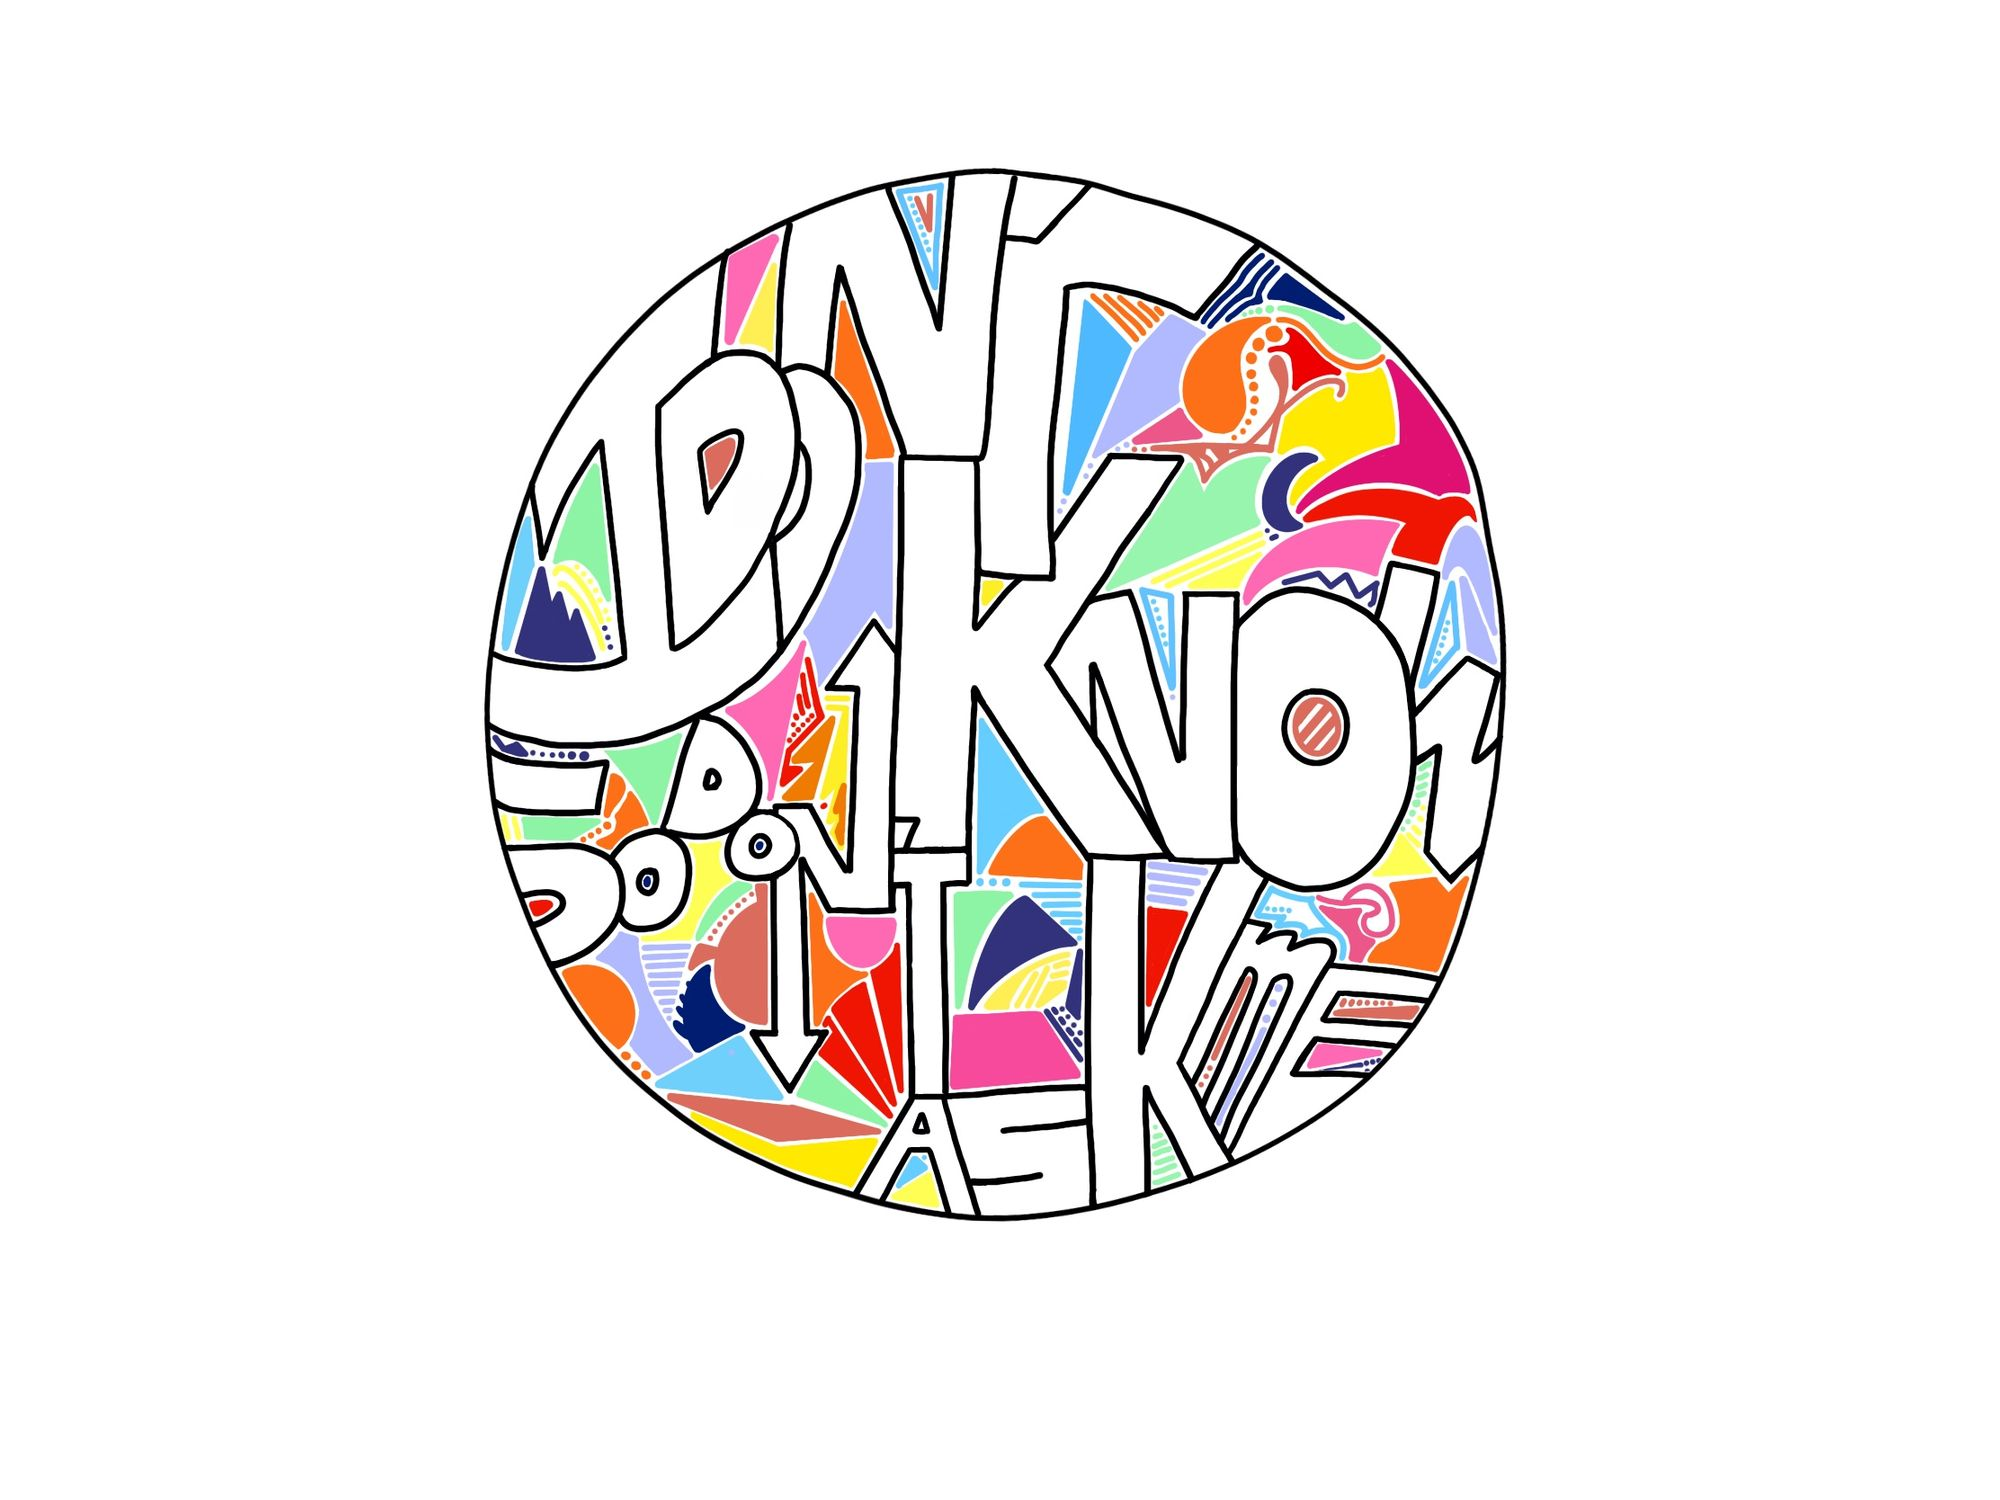 Artwork depicting the phrase 'I don't know so don't ask me'